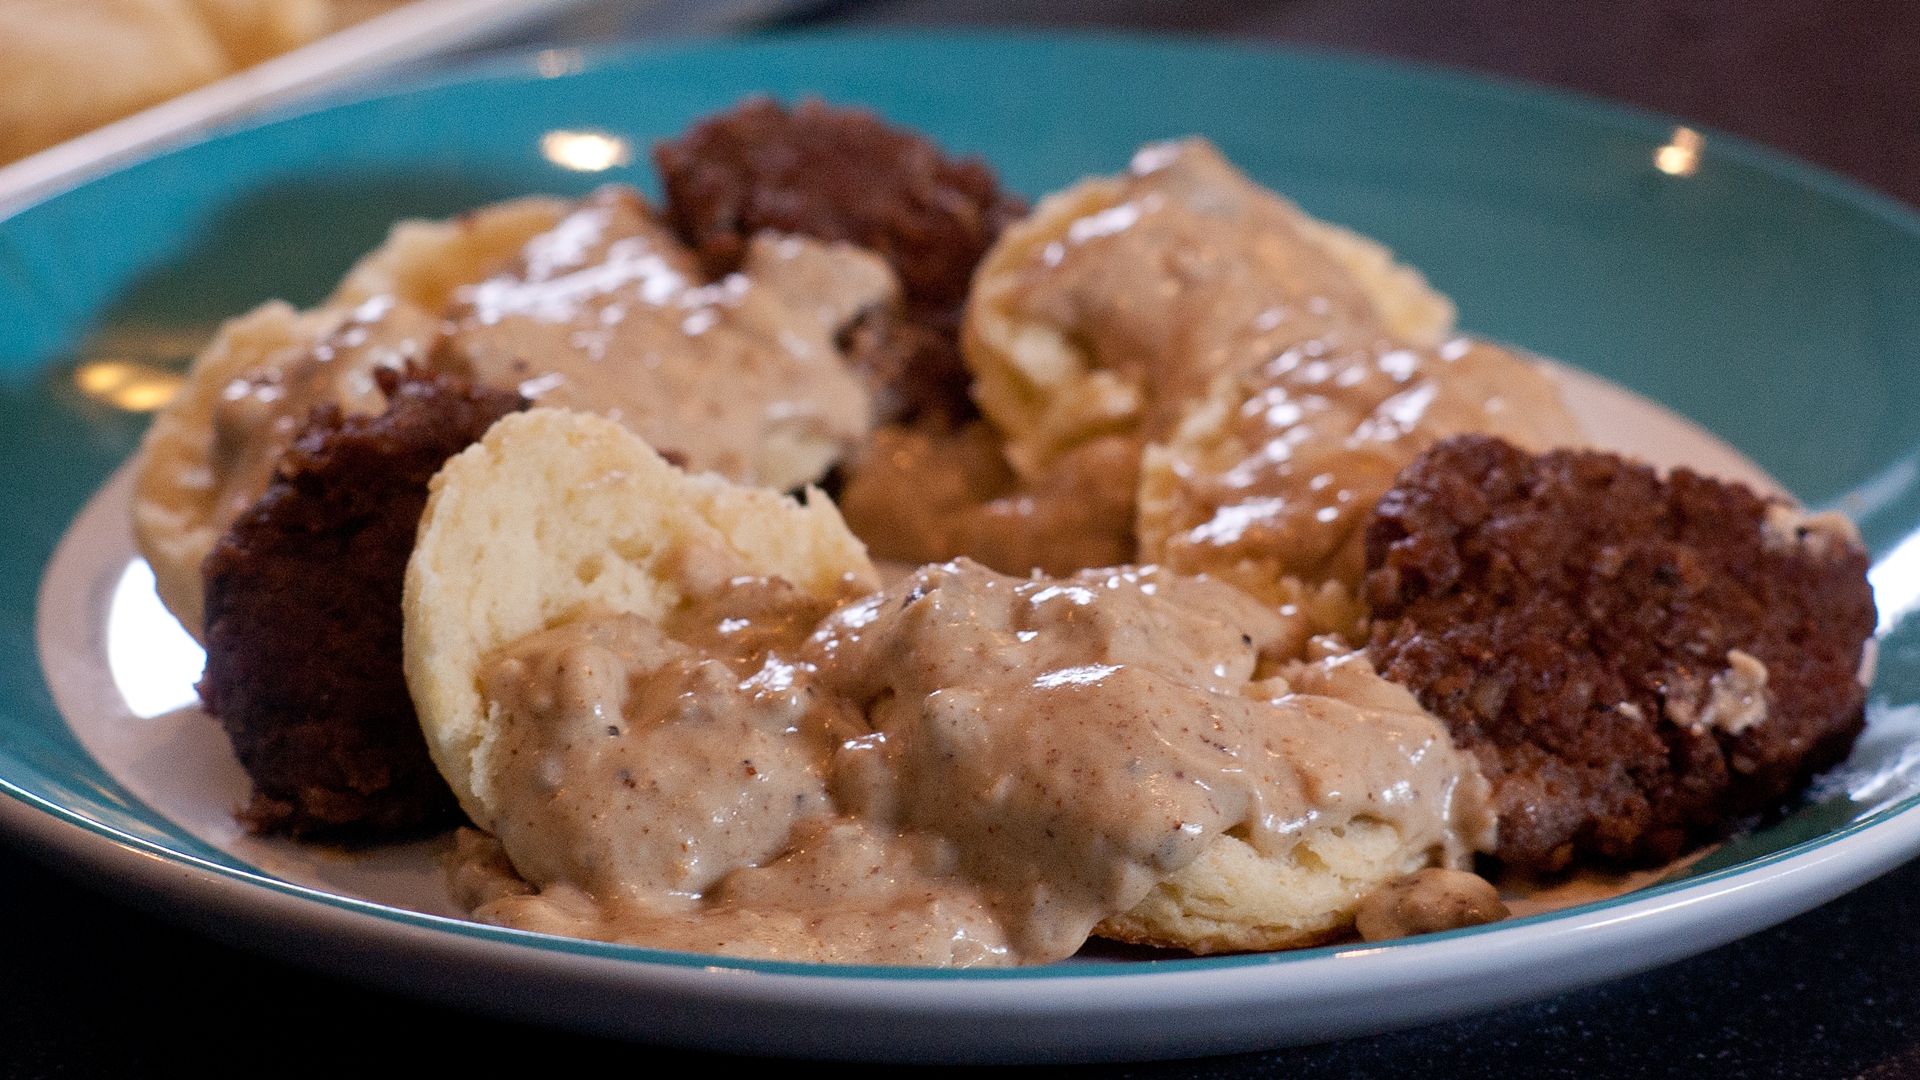 Biscuits and gravy: indulge in a simple Southern snack